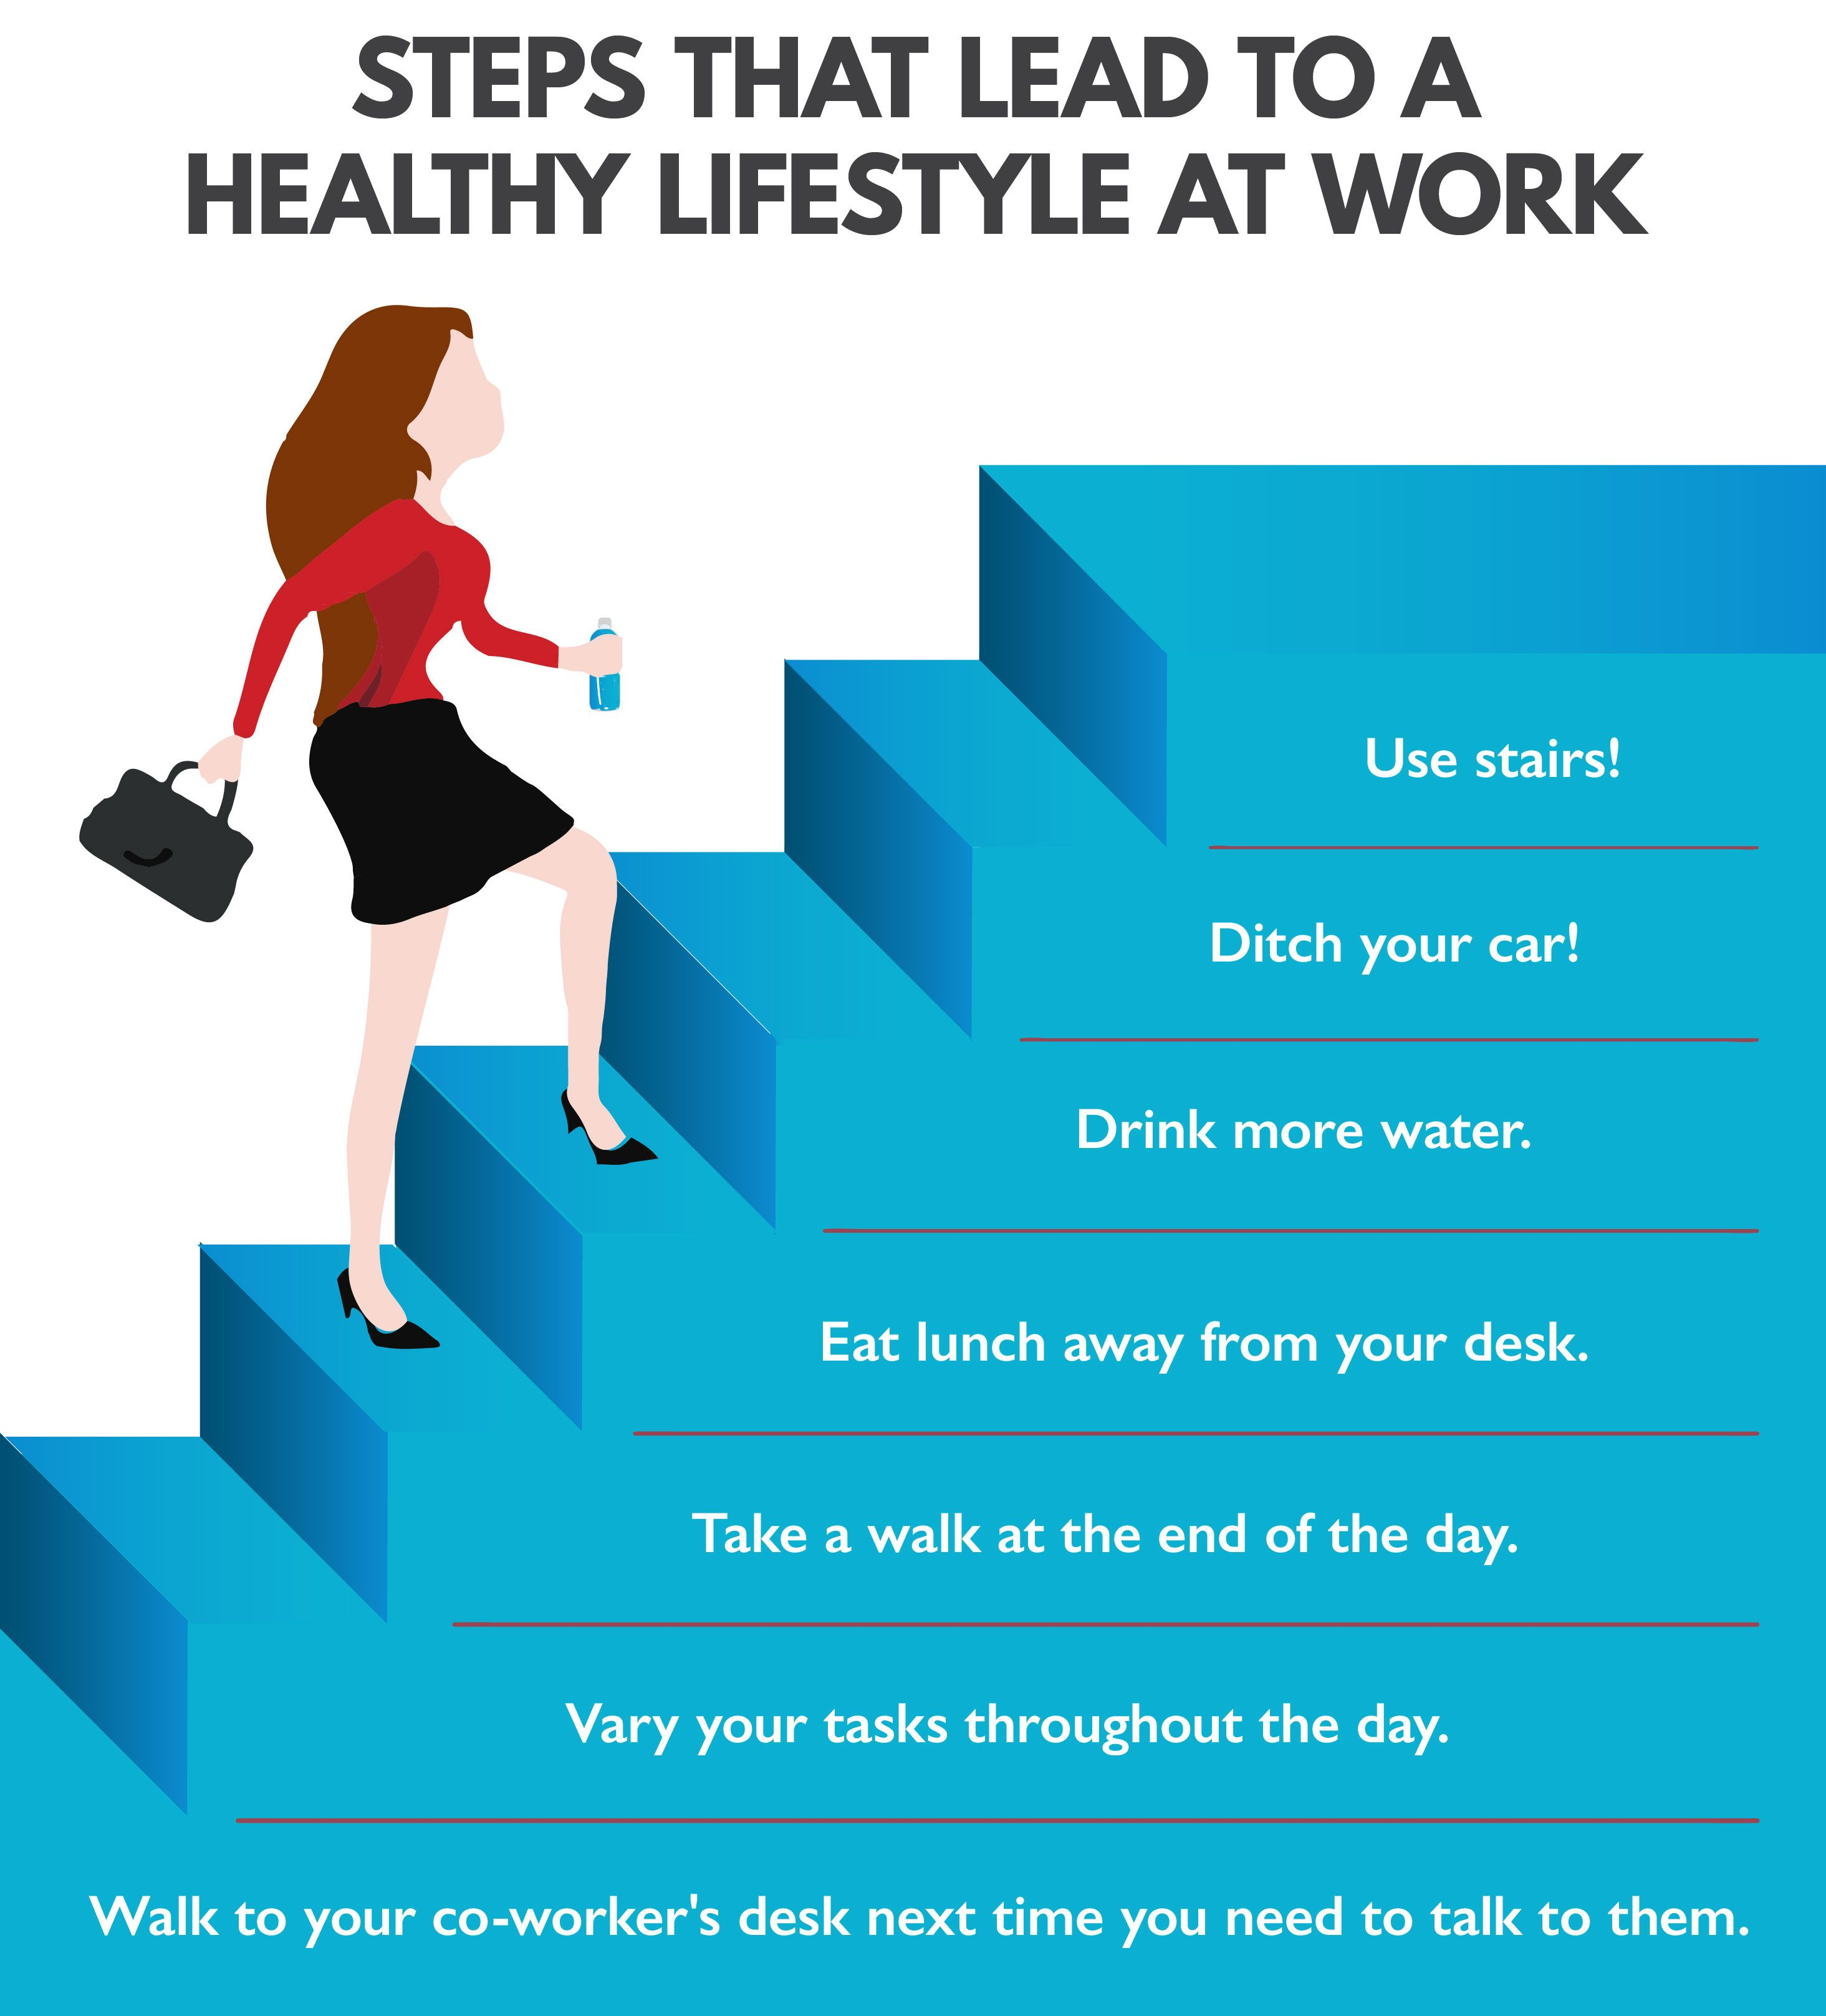 Sedentary Lifestyle: Do You Find Yourself Sitting All Day At Work? Your